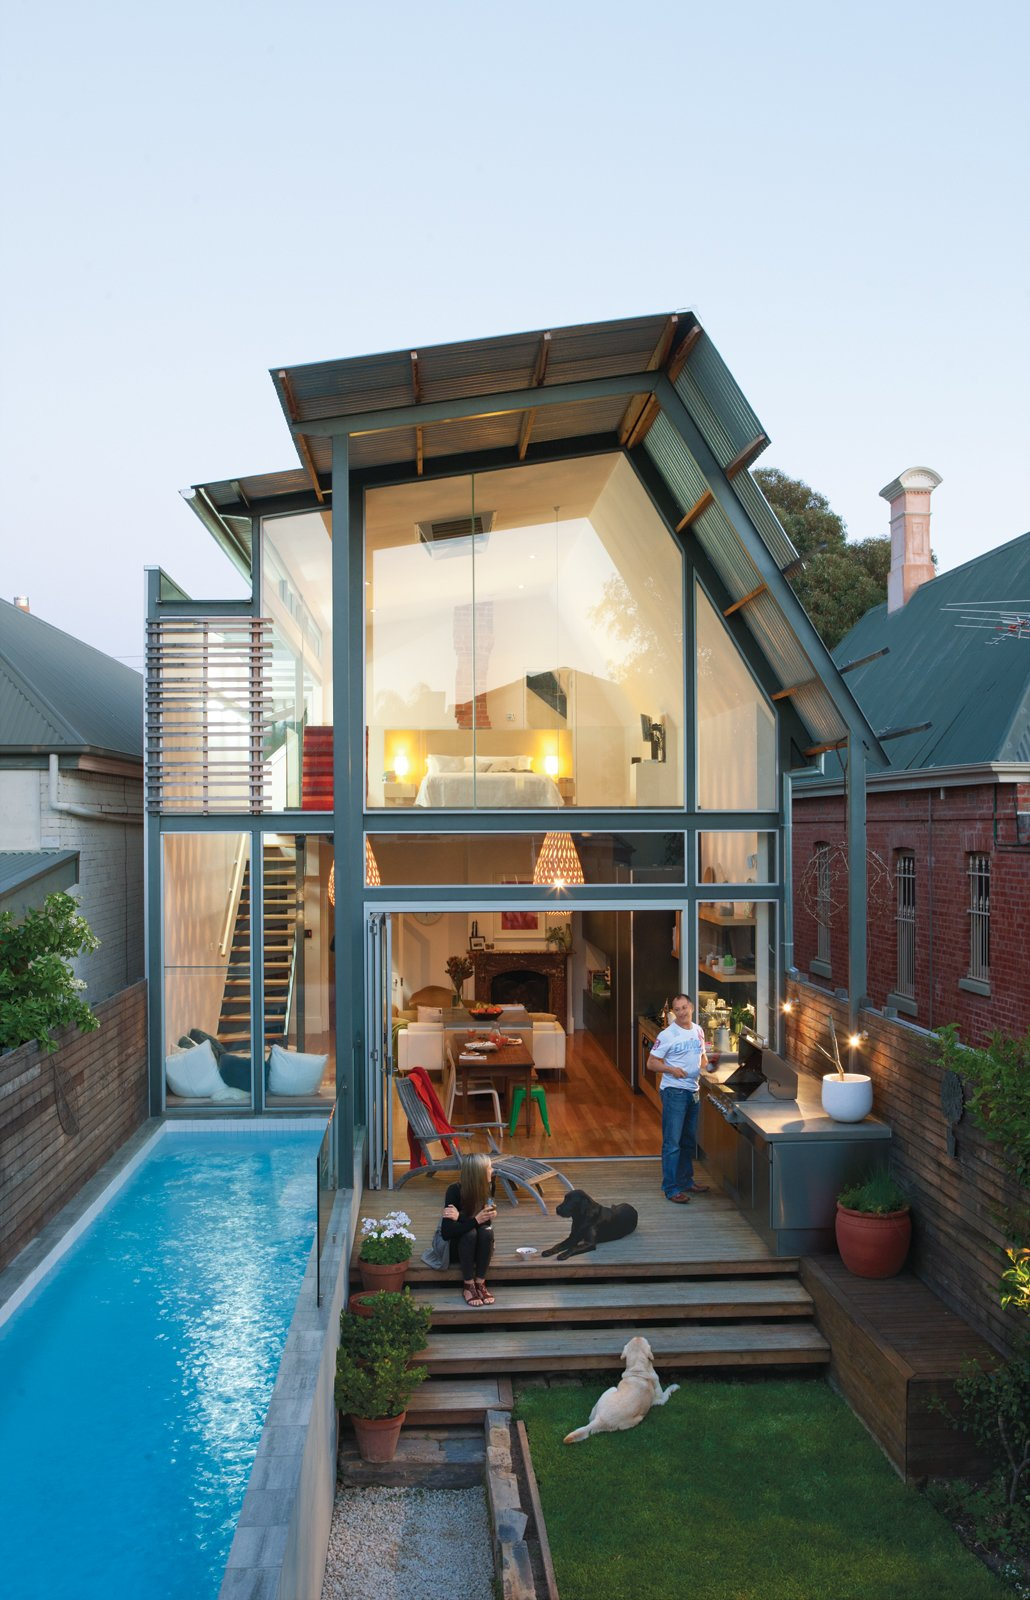 This Luminous Australian Renovation Packs a Lot Into a 23-Foot-Wide Lot